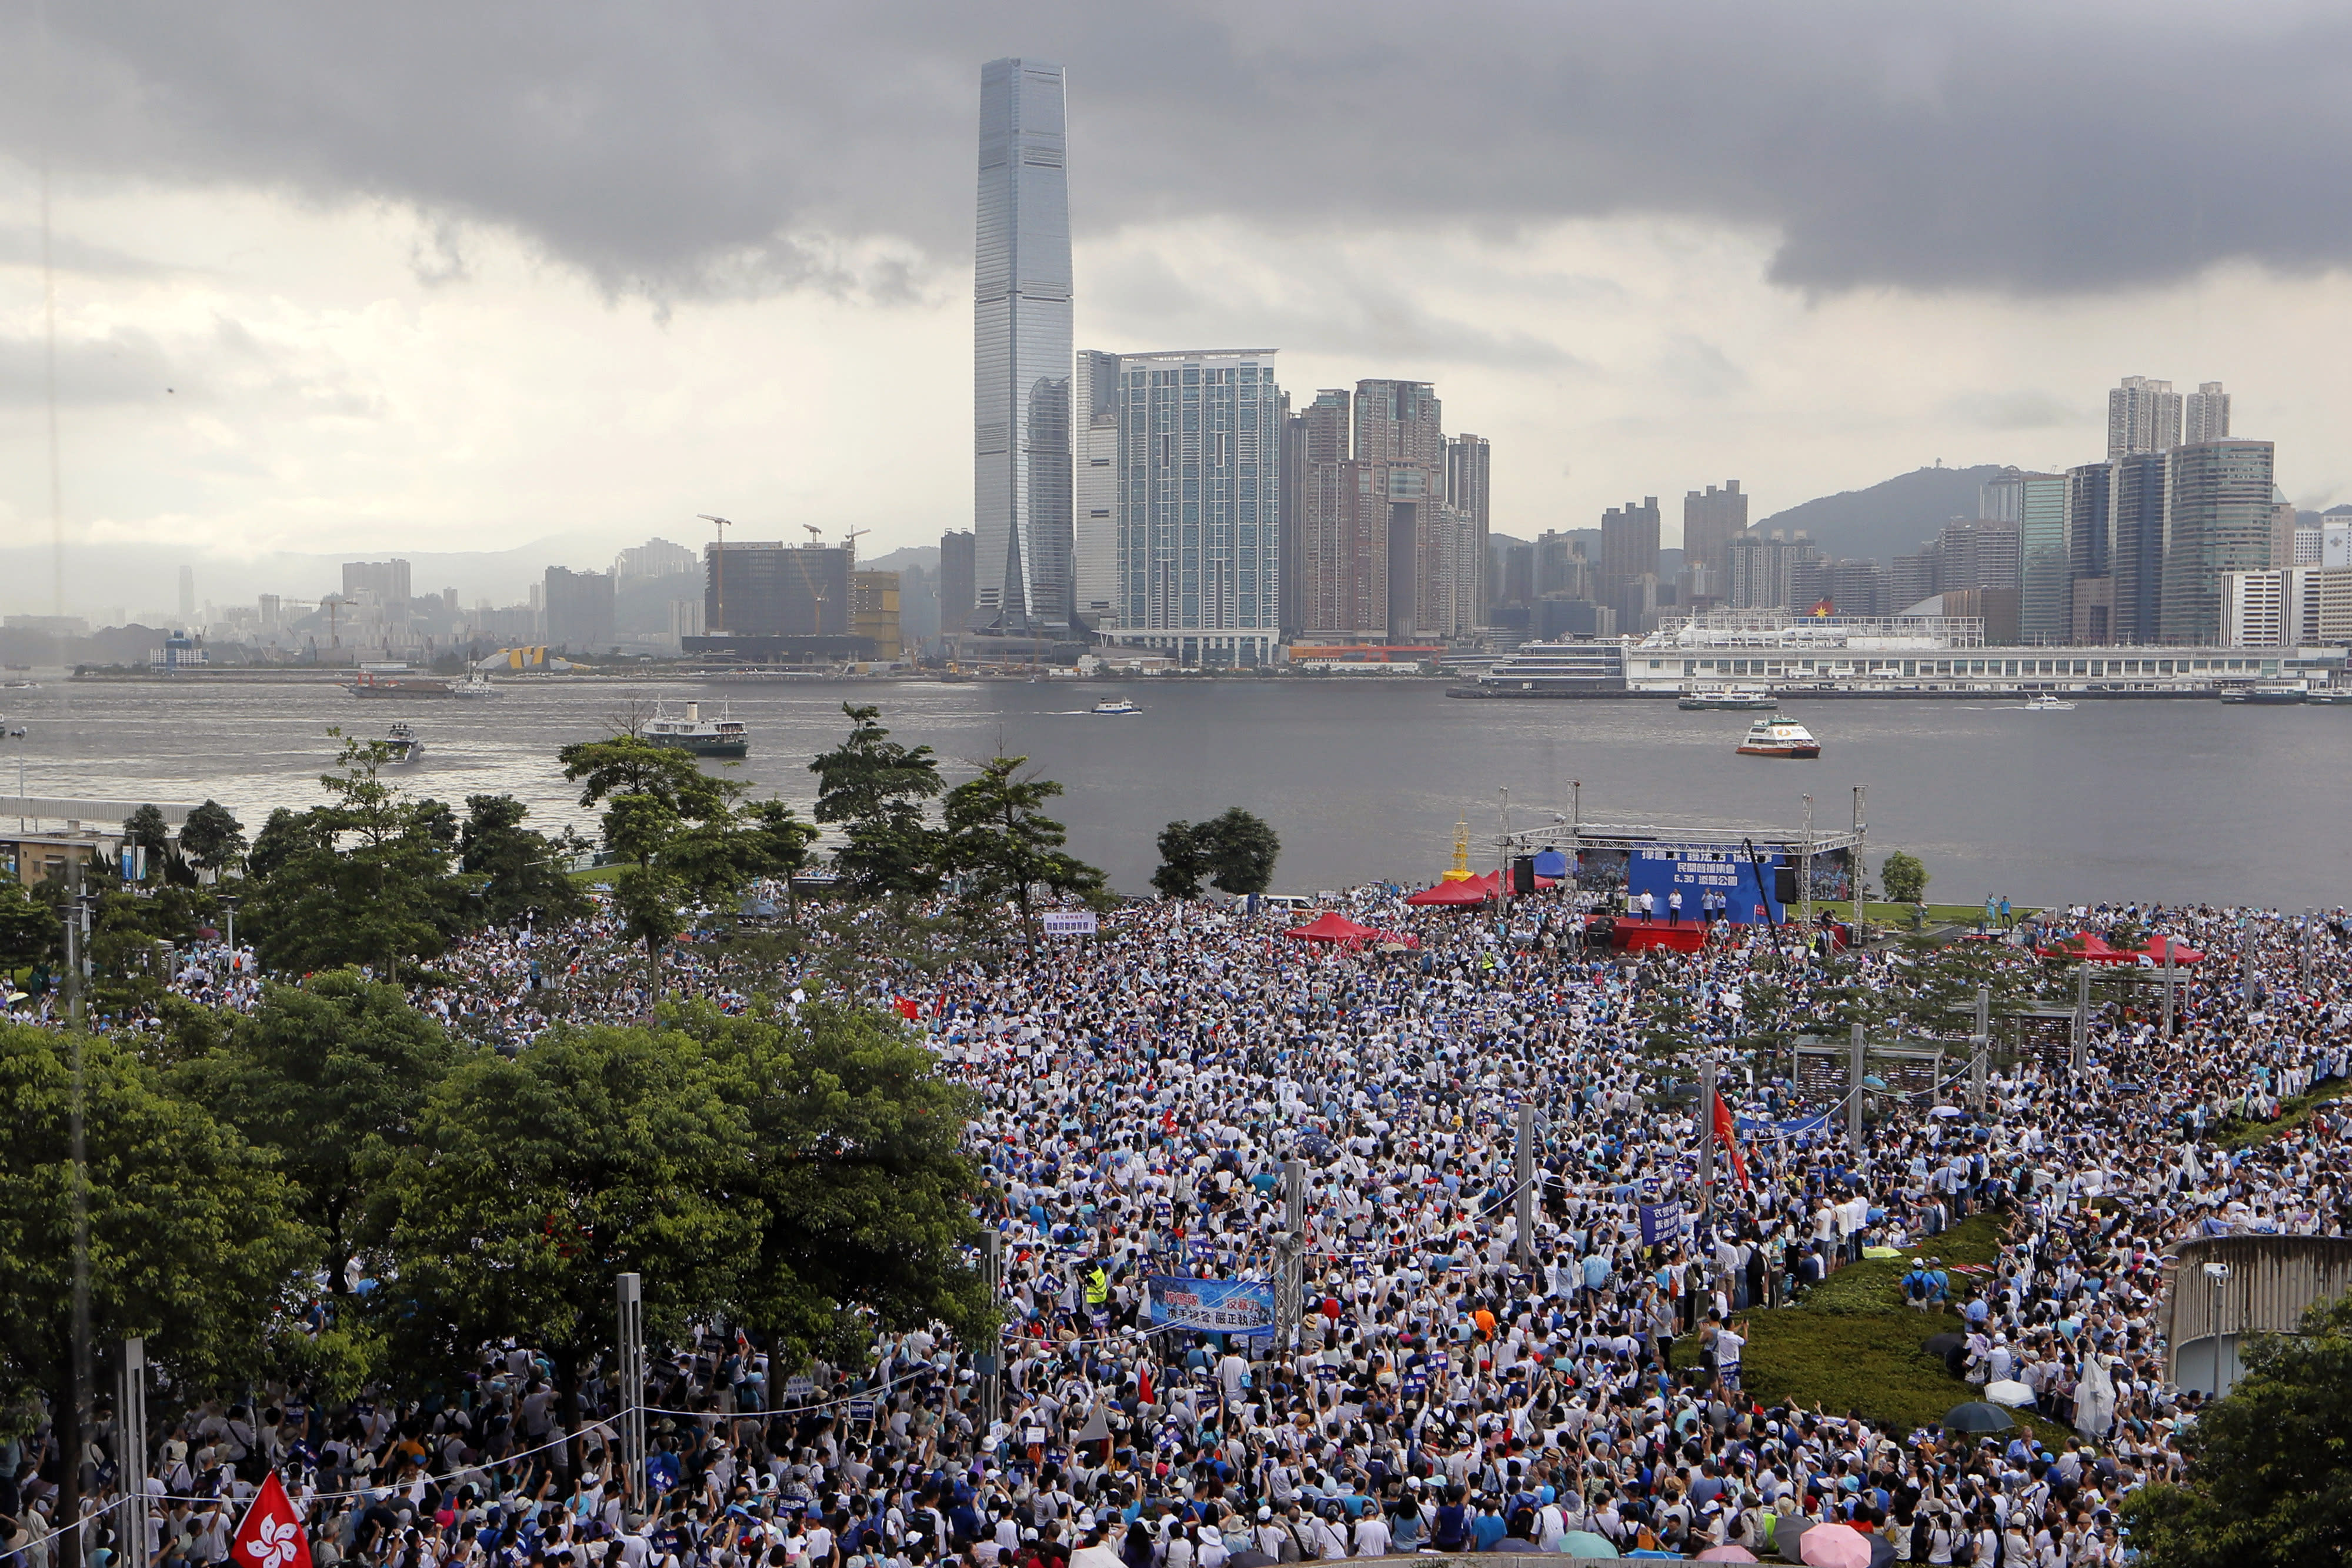 """Pro-China's supporters hold Chinese flags and placards read """"We support police"""" during a rally outside Legislative Council Complex in Hong Kong, Sunday, June 30, 2019. Supporters rallied in support of the police at Tamar Park (AP Photo/Kin Cheung)"""